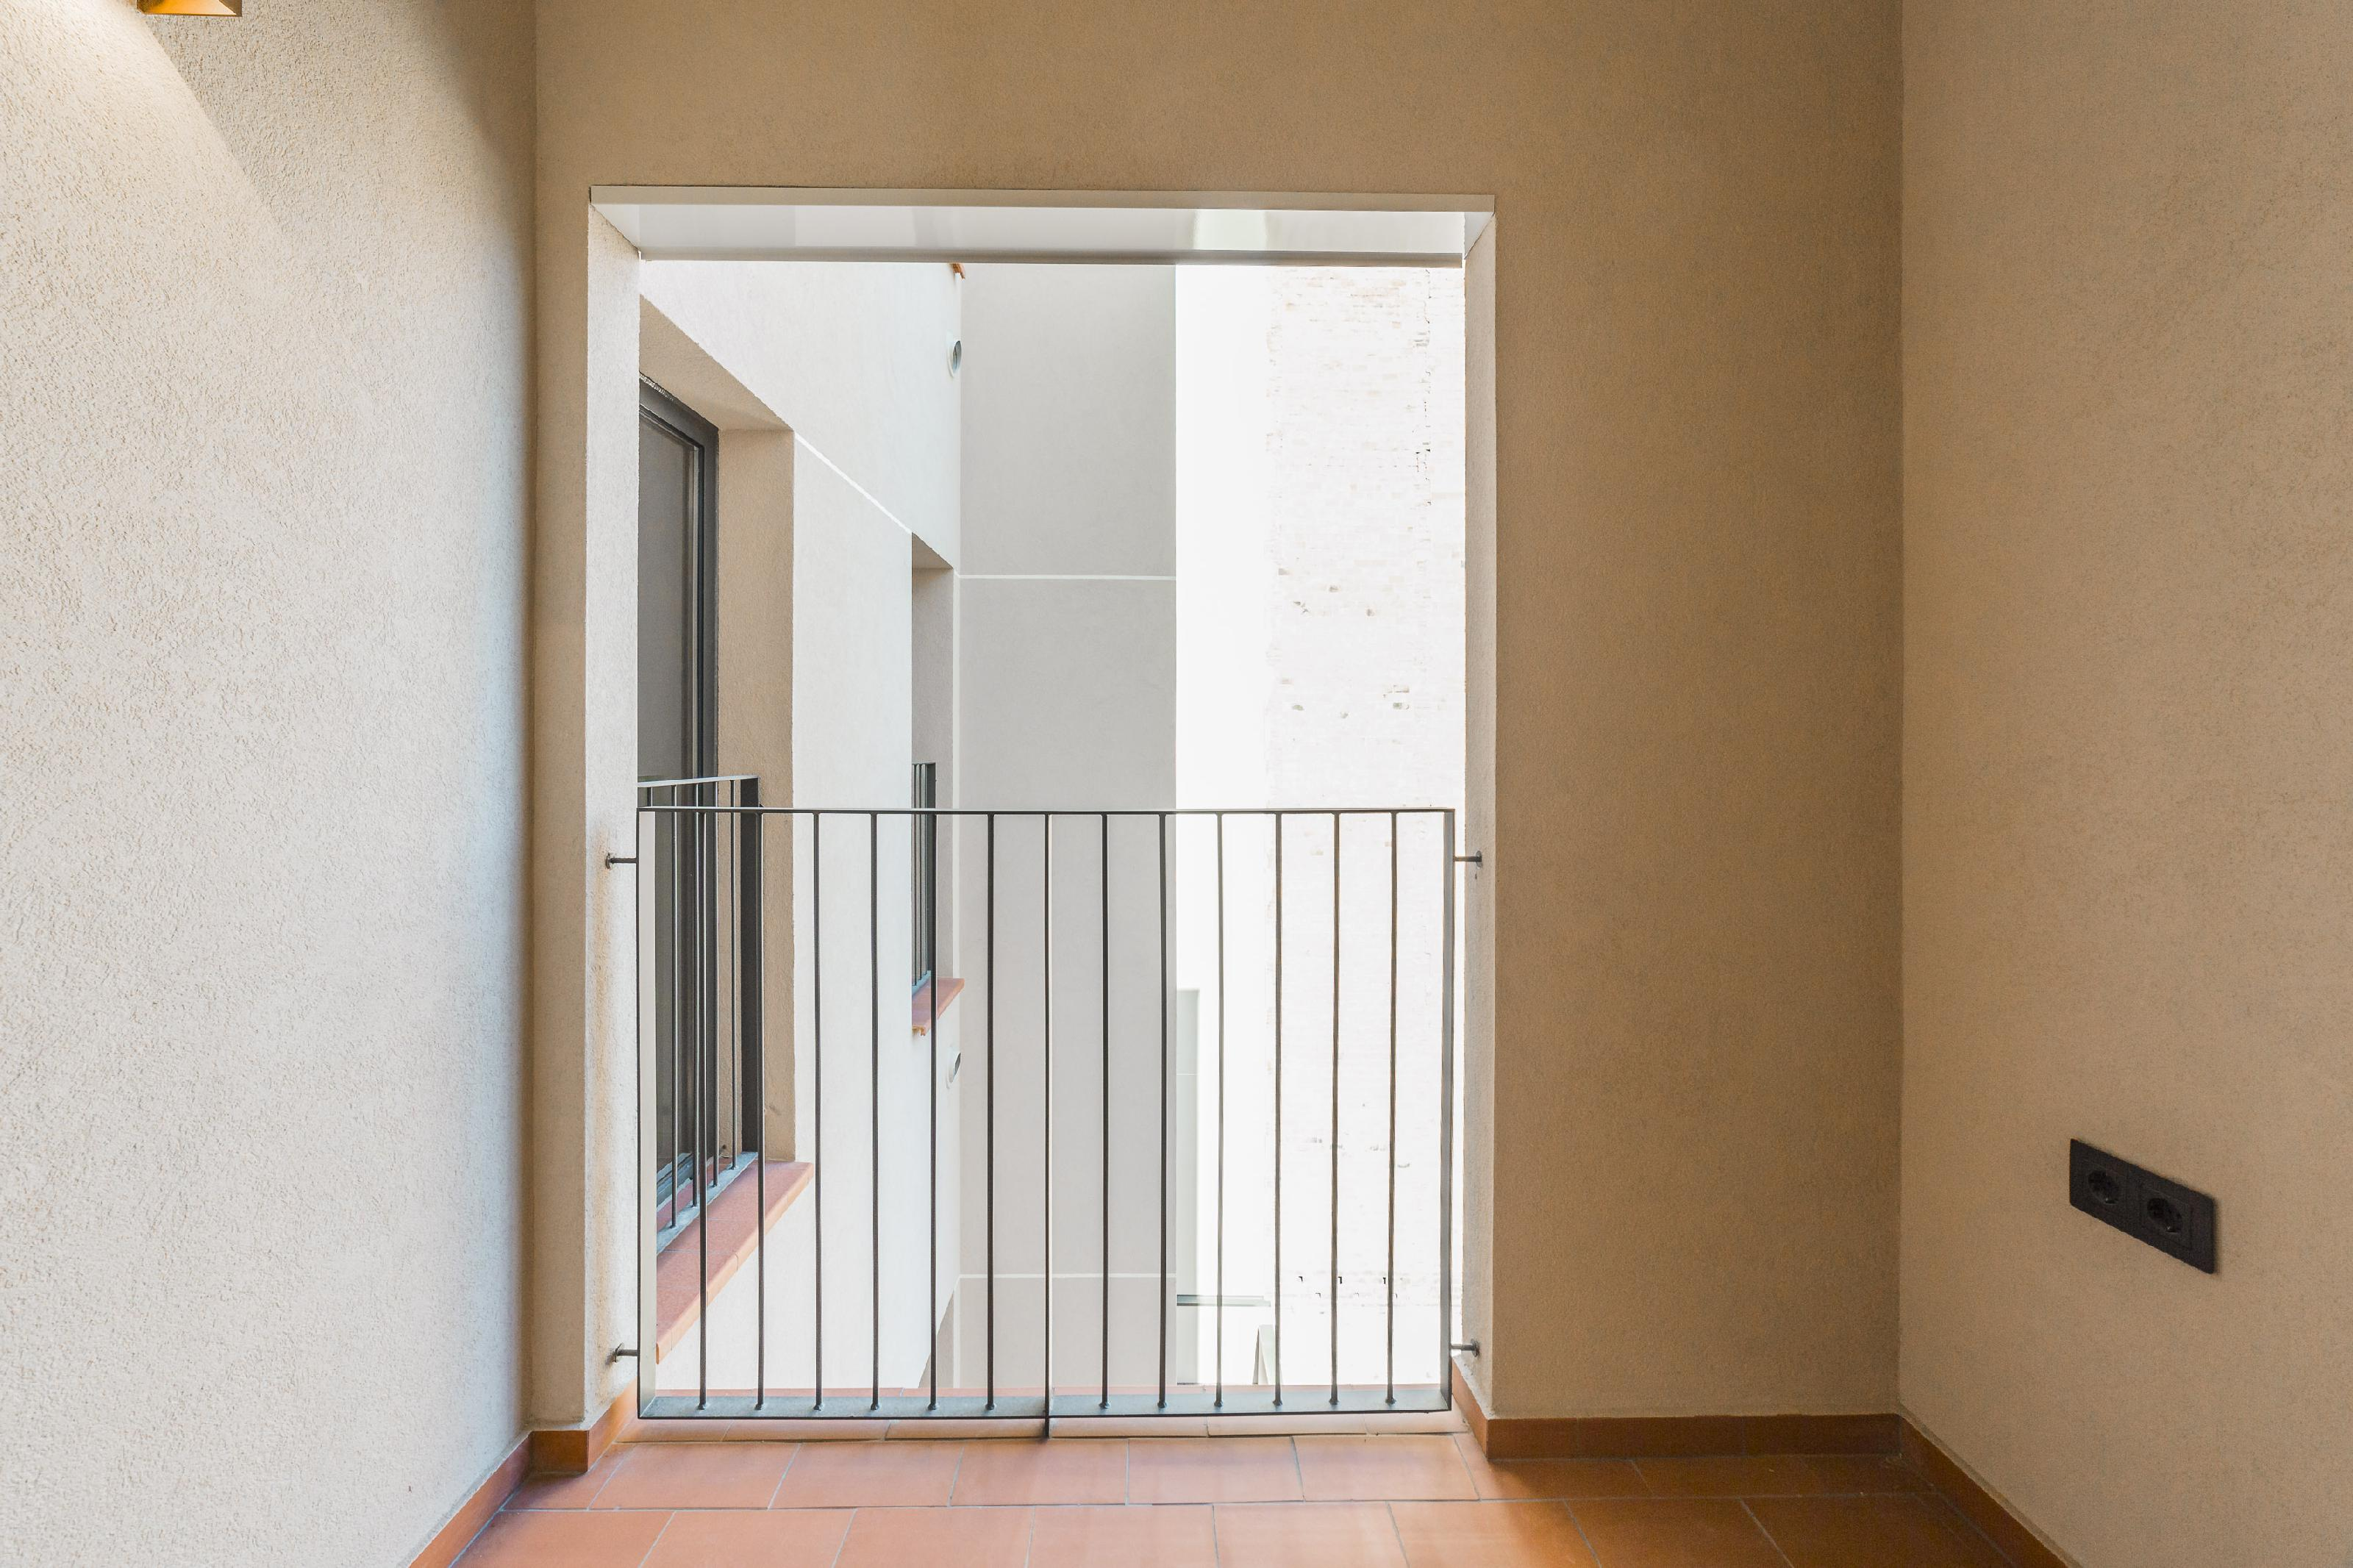 182474 Apartment for sale in Eixample, Old Left Eixample 5